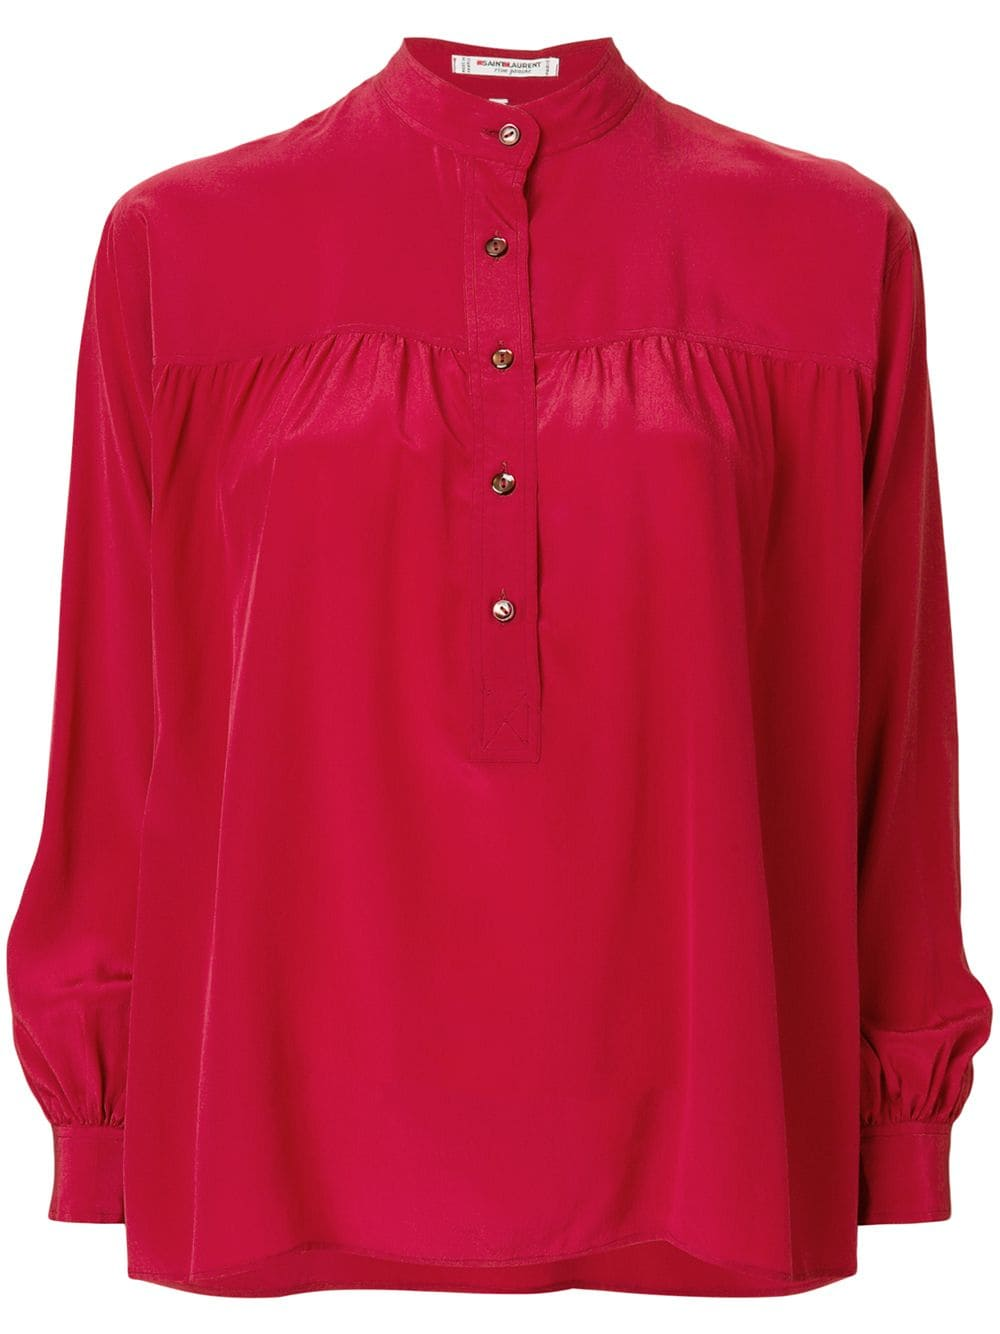 38cec20b15b Yves Saint Laurent Pre-Owned Button Up Blouse in 2019 | Products ...